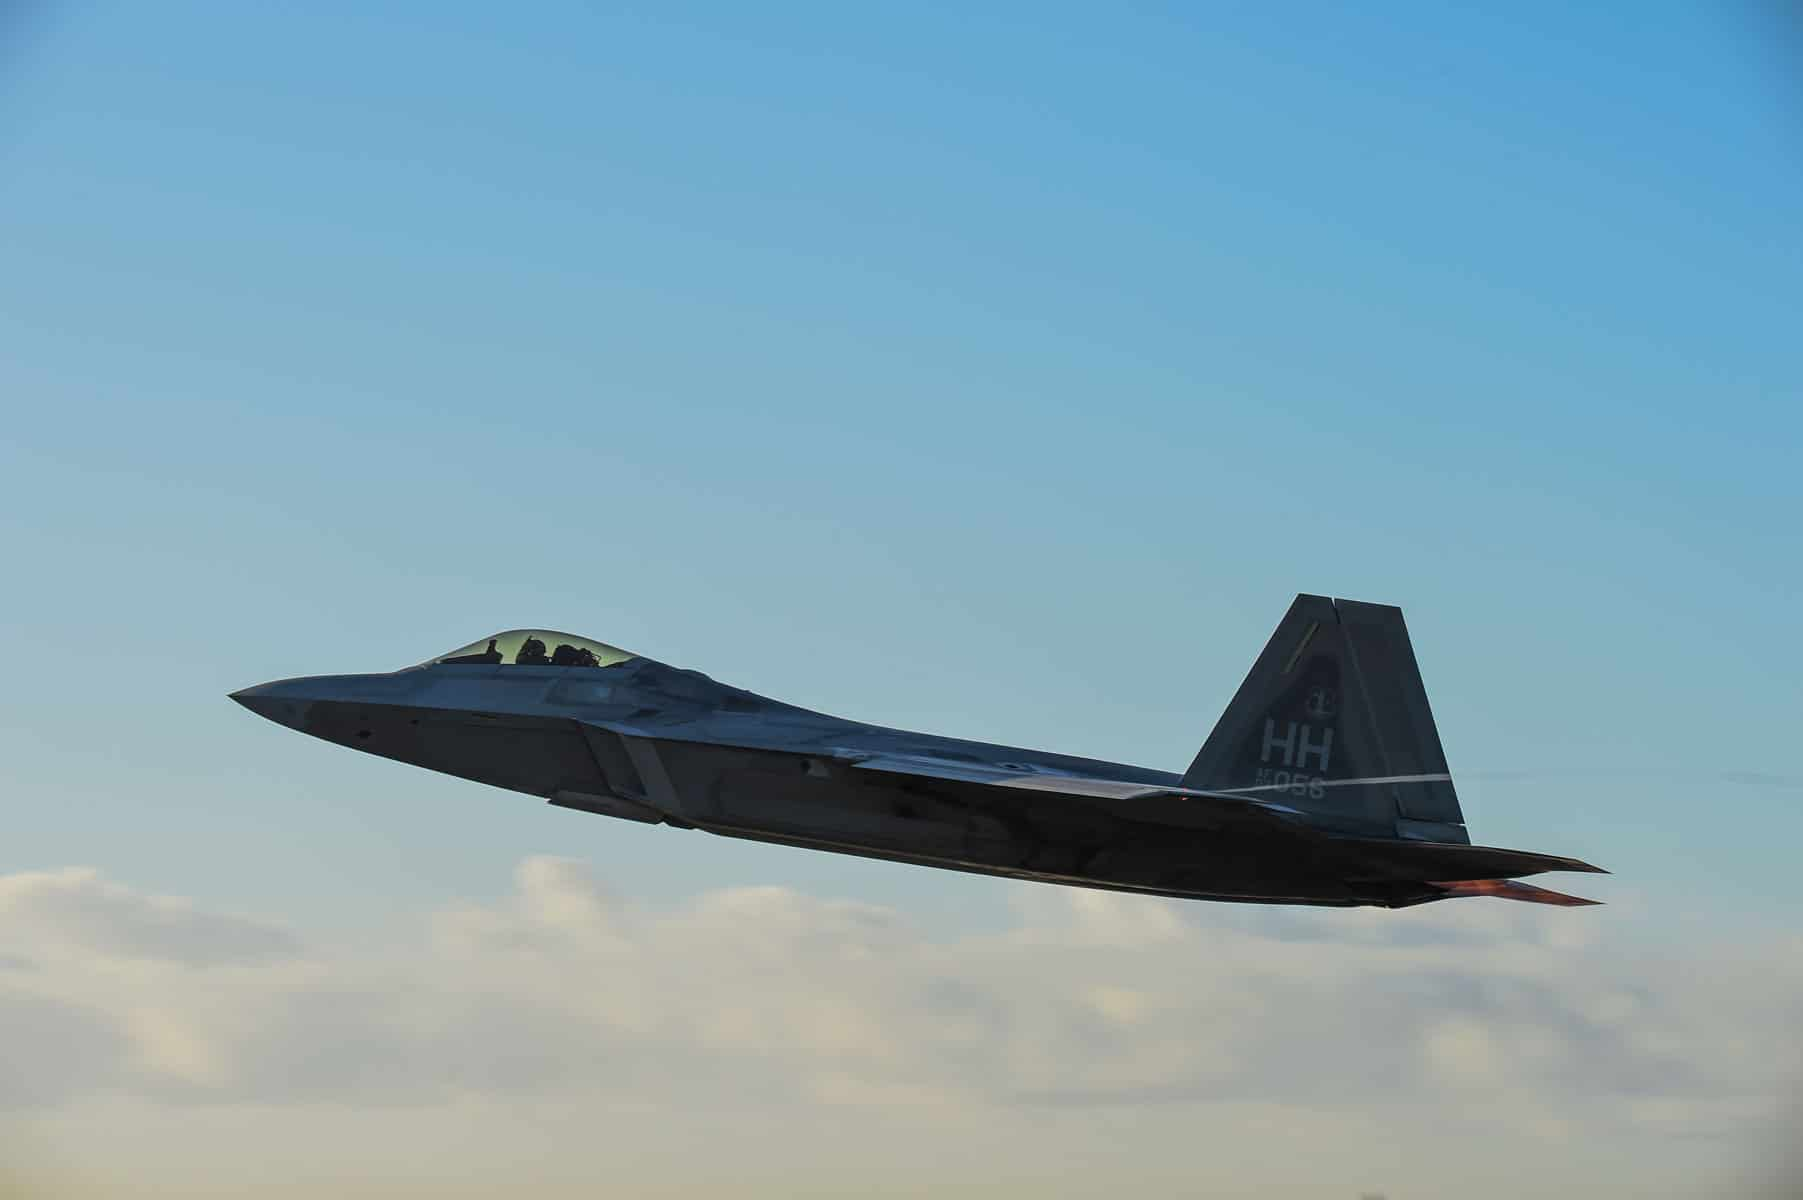 A U.S. Air Force F-22 Raptor from Hawaii Air National Guard's 154th Wing takes off for the morning mission during Sentry Aloha 18-01.